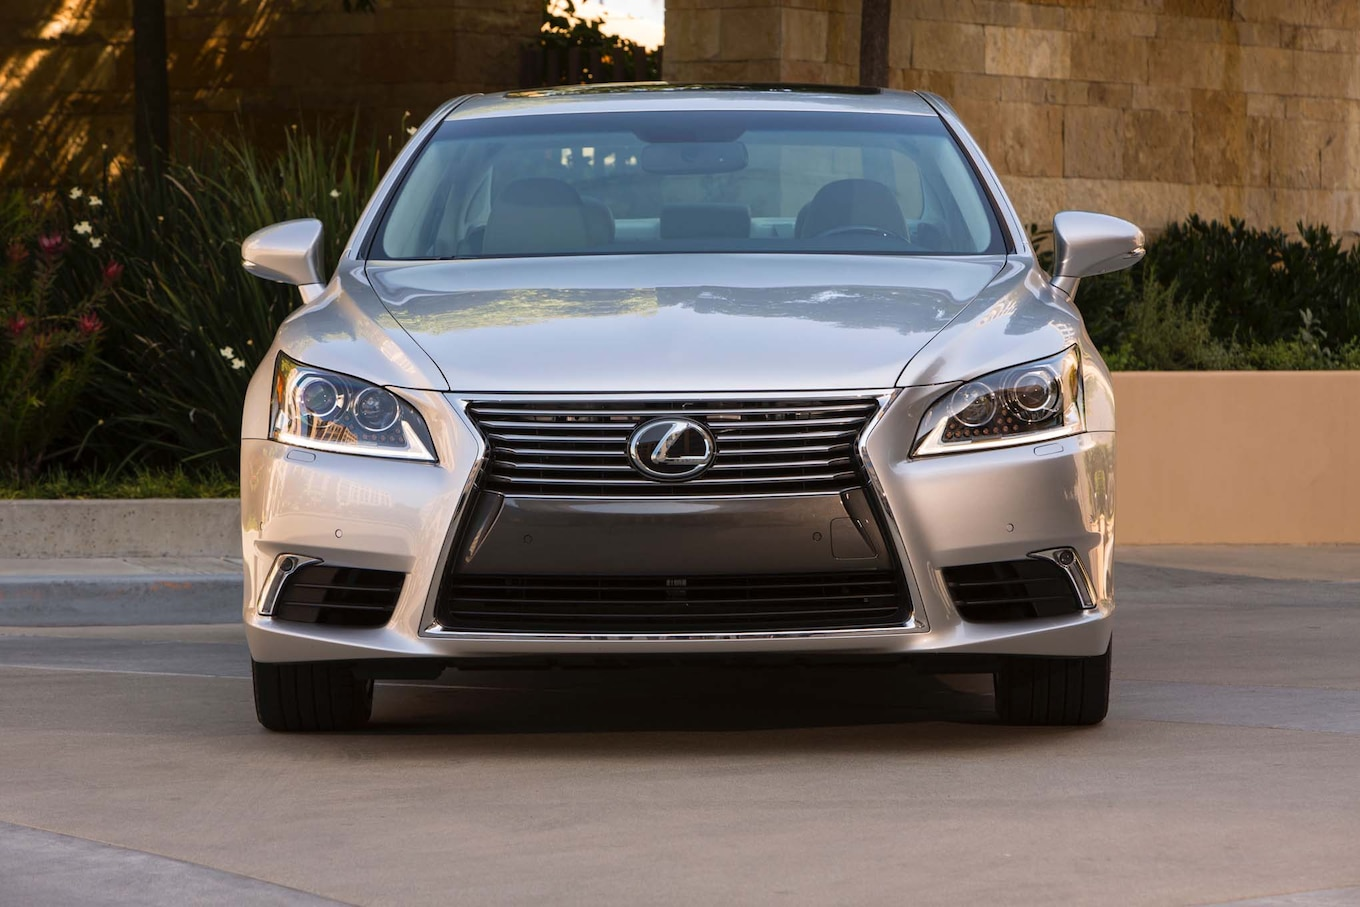 2017 Lexus LS460 Reviews and Rating